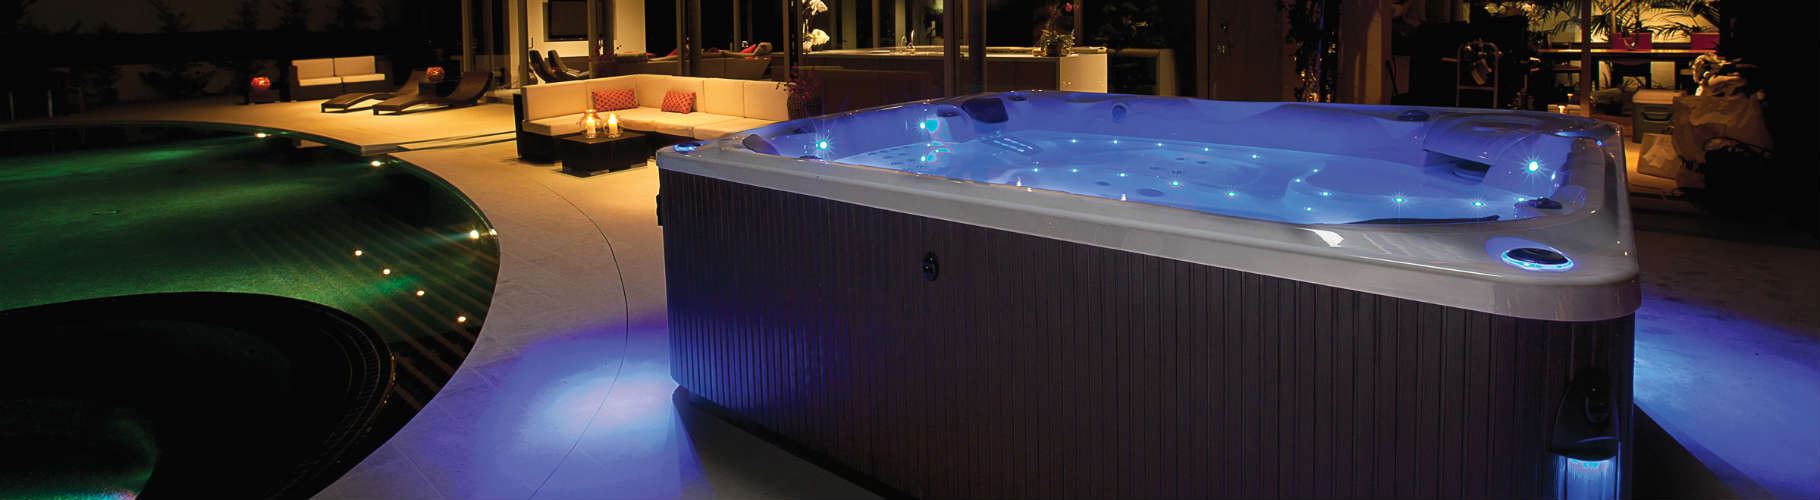 spa spa hotspring jacuzzi bain-tourbillon